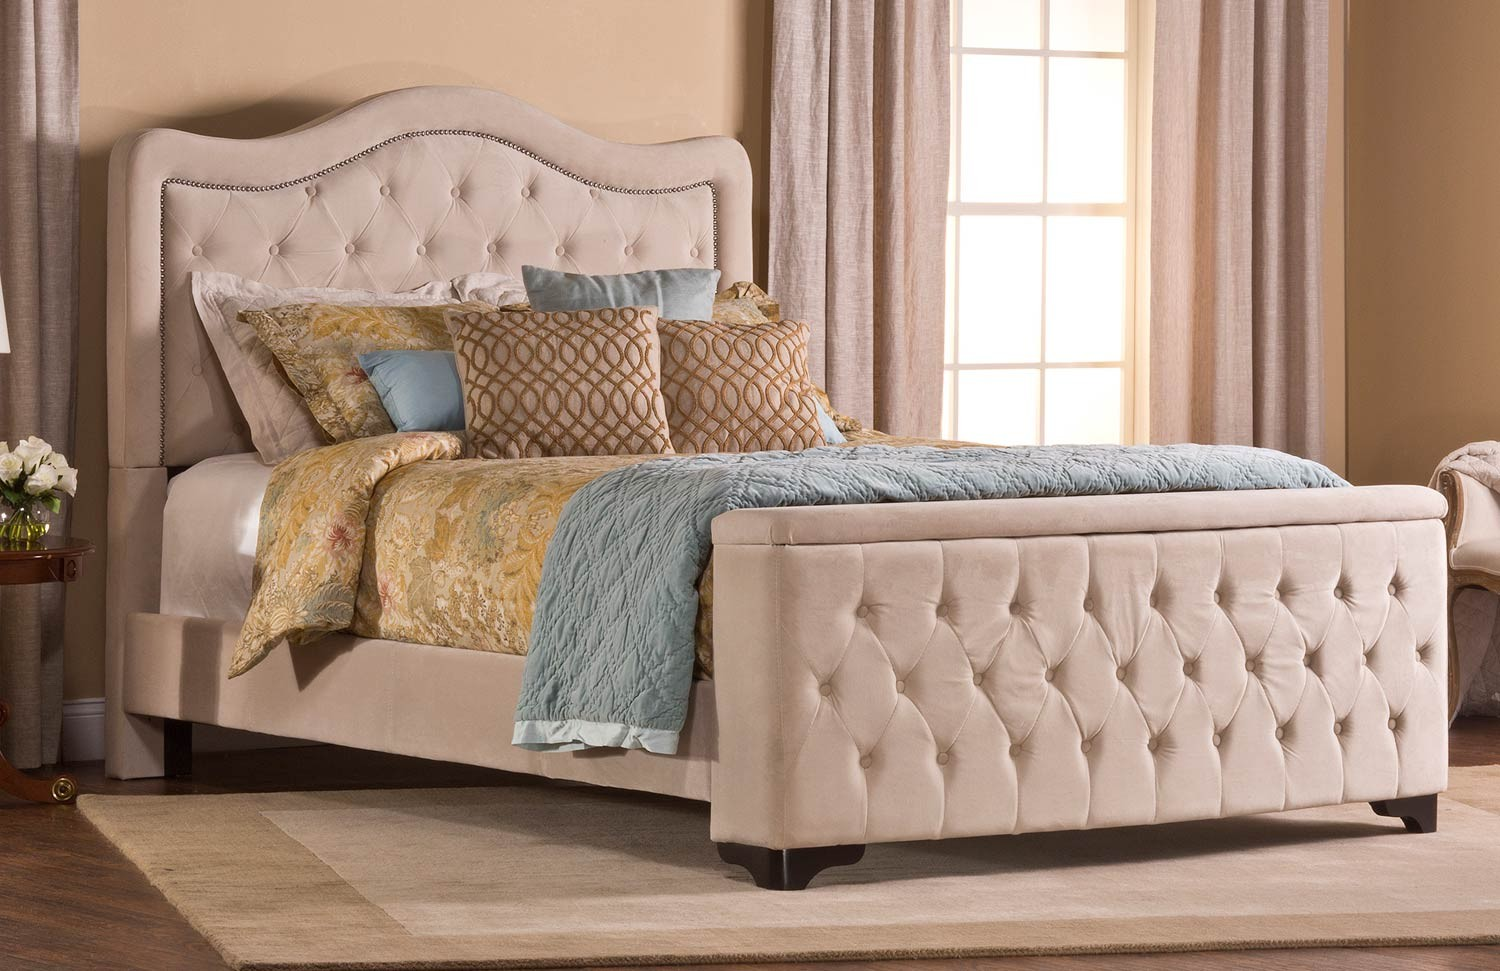 Hillsdale Trieste Tufted Upholstered Bed - Storage Footboard - Buckwheat